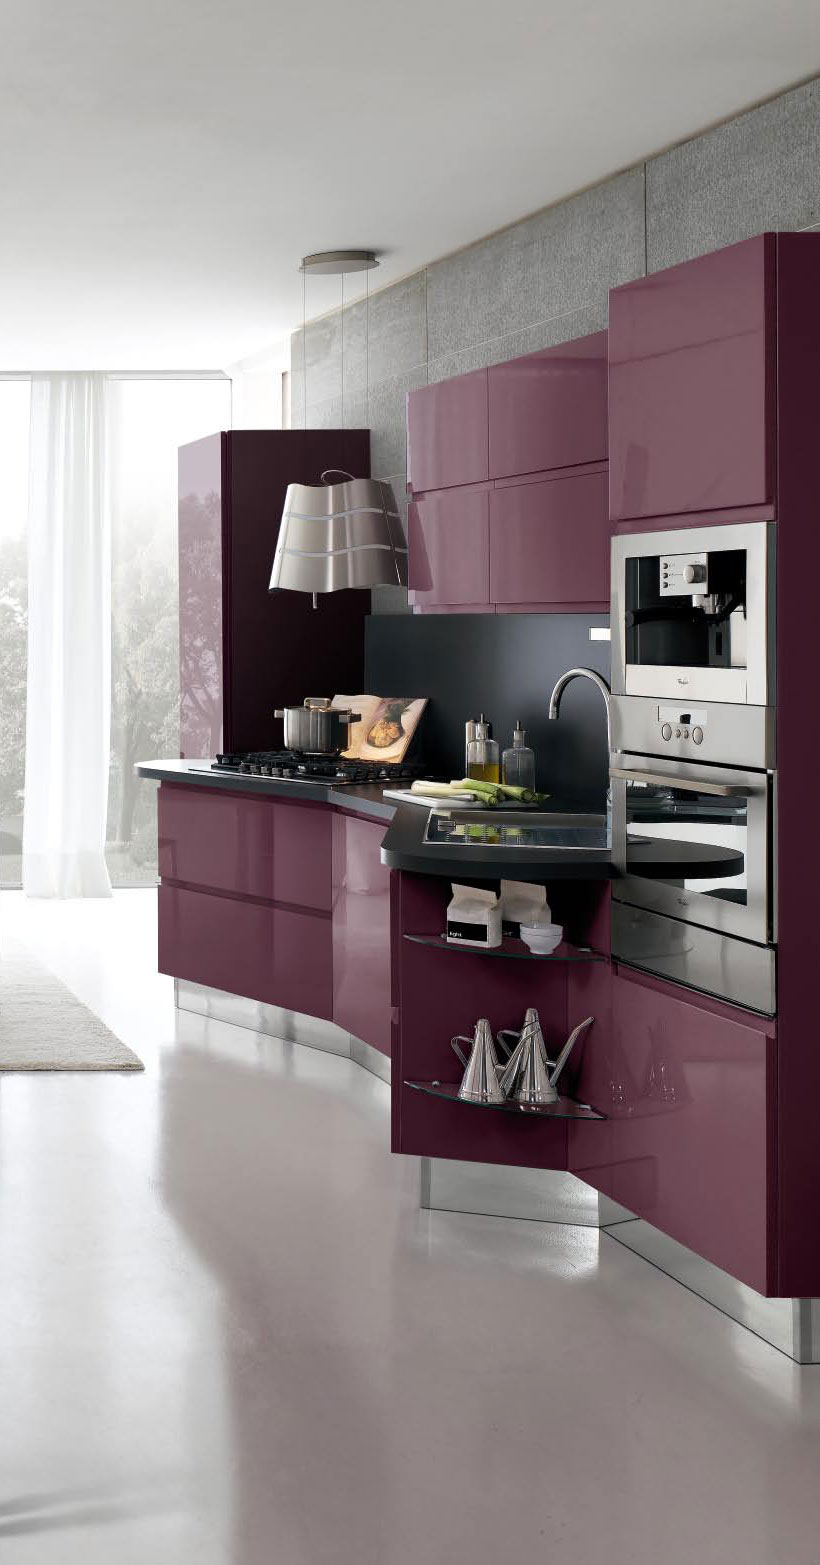 What is new in kitchen design dream house experience for Contemporary kitchen style